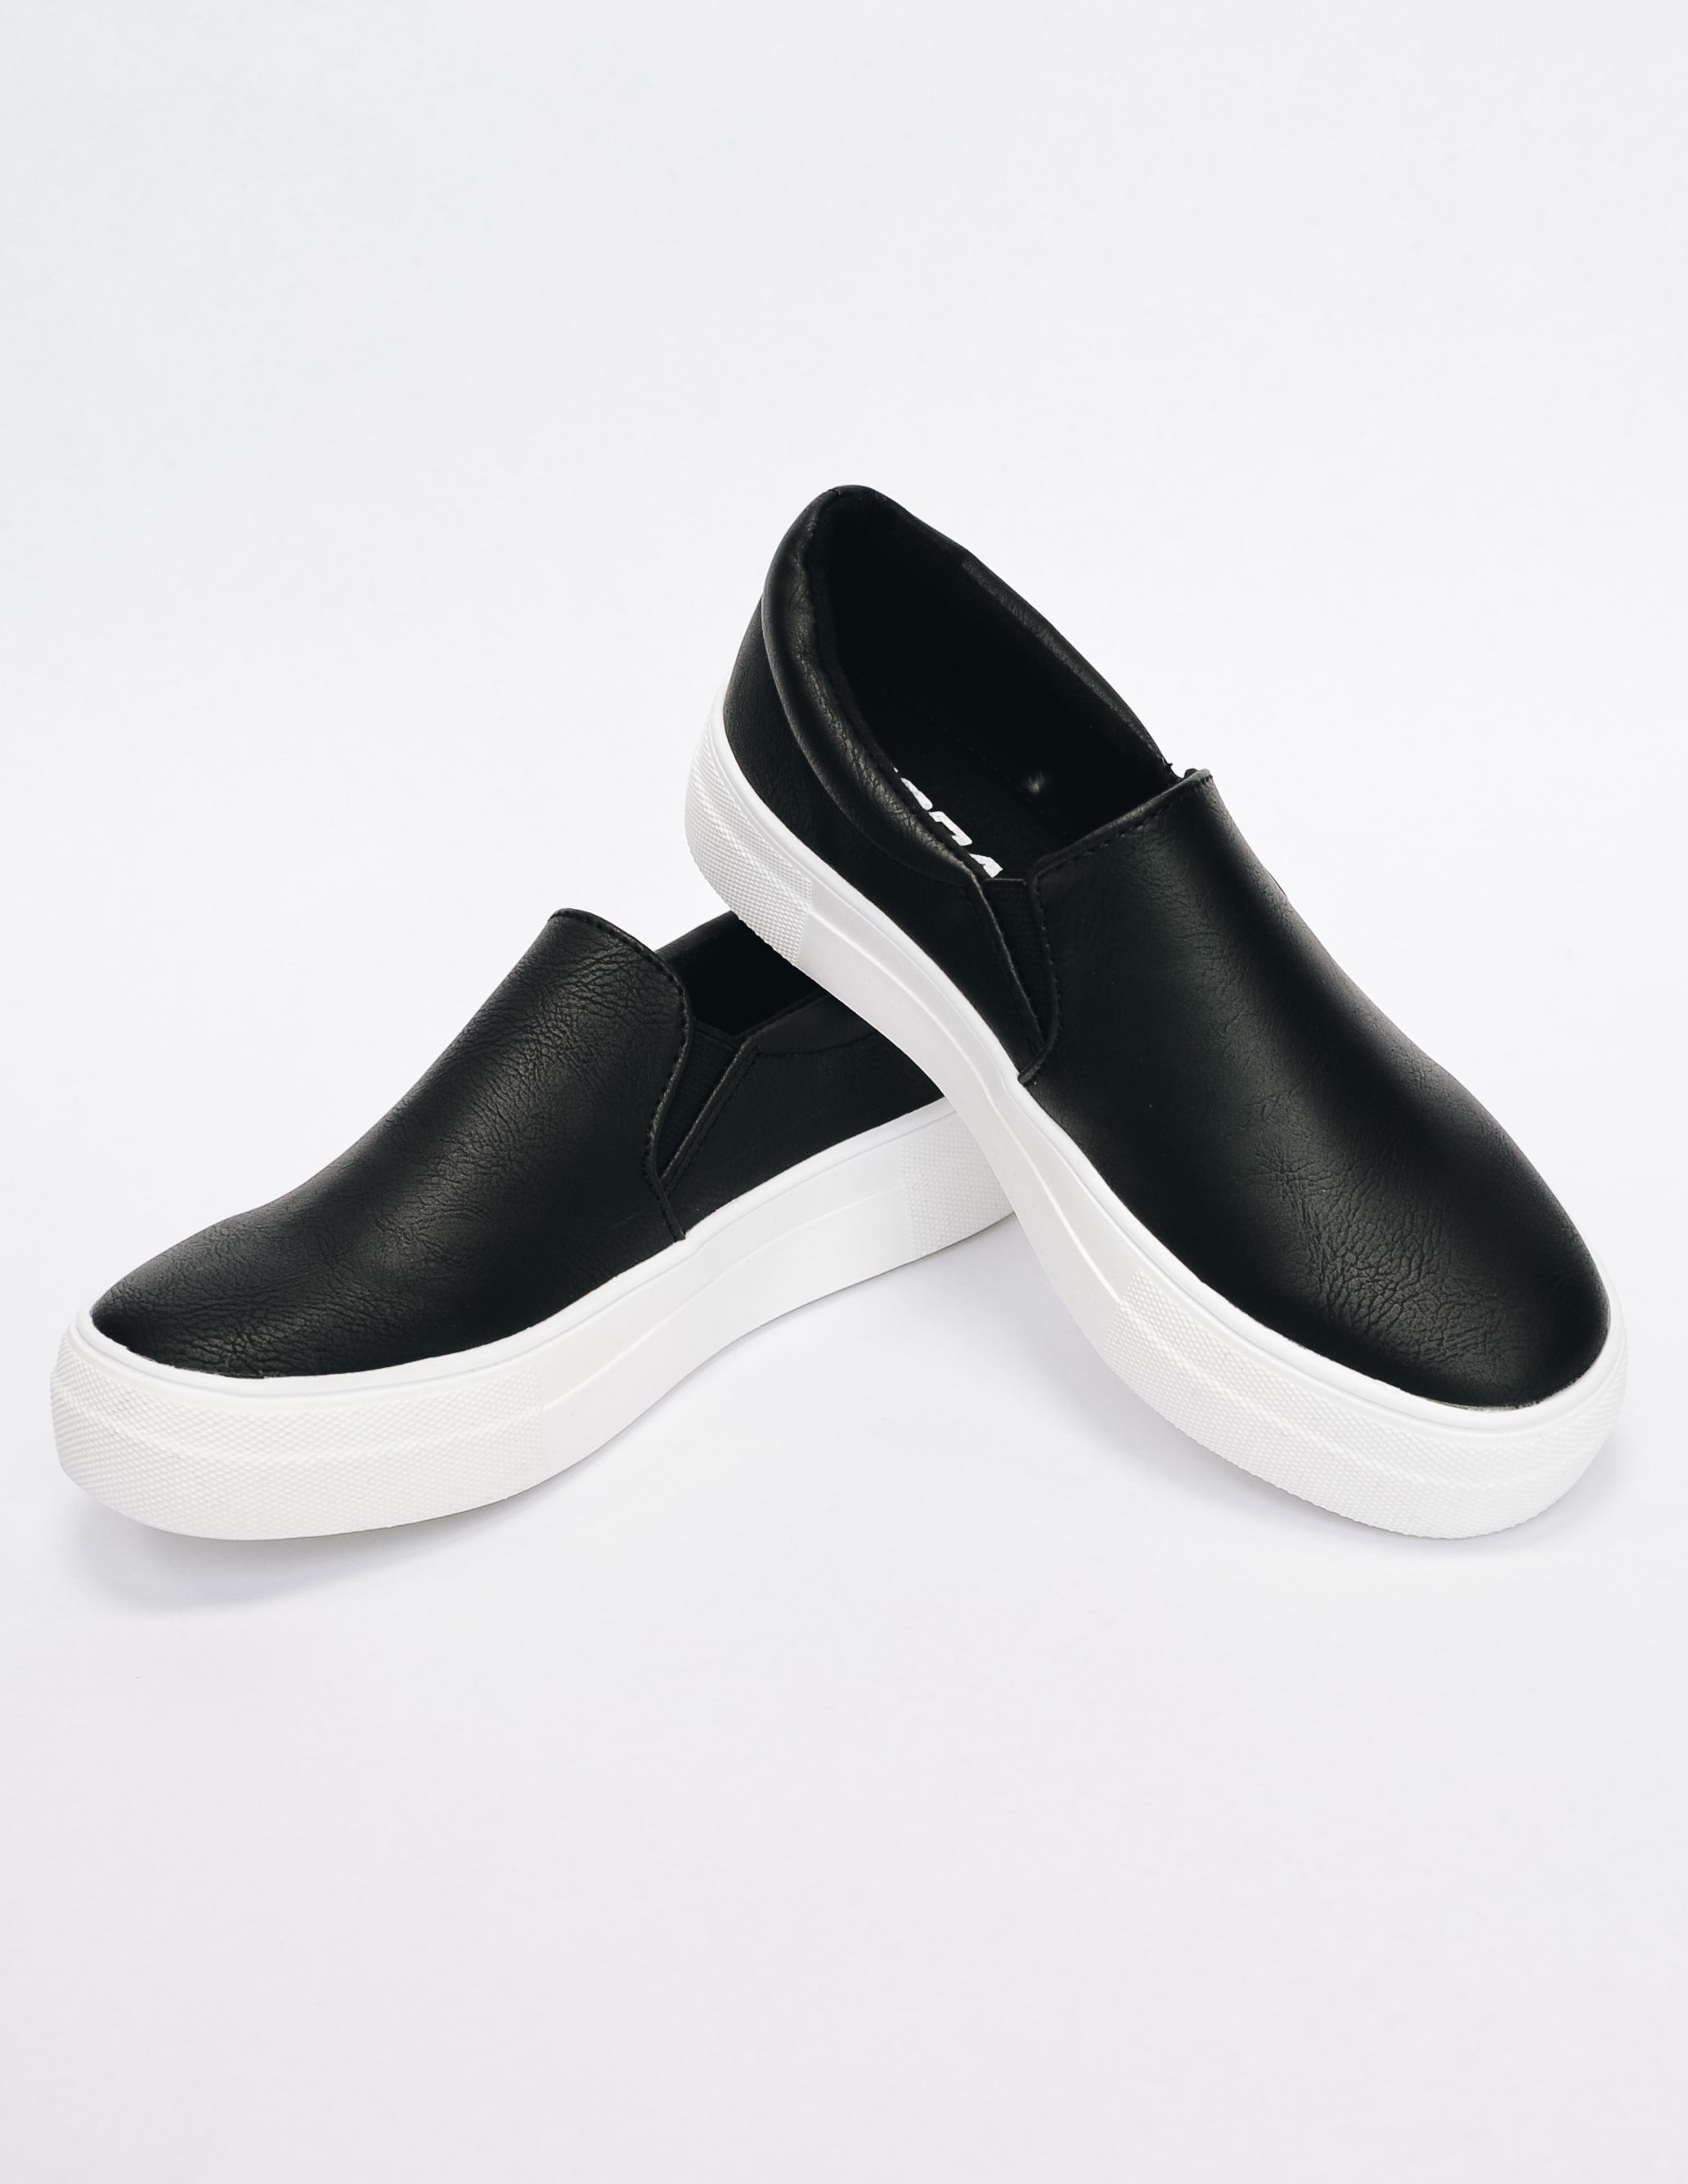 Black slip on sneaker with white rubber sole